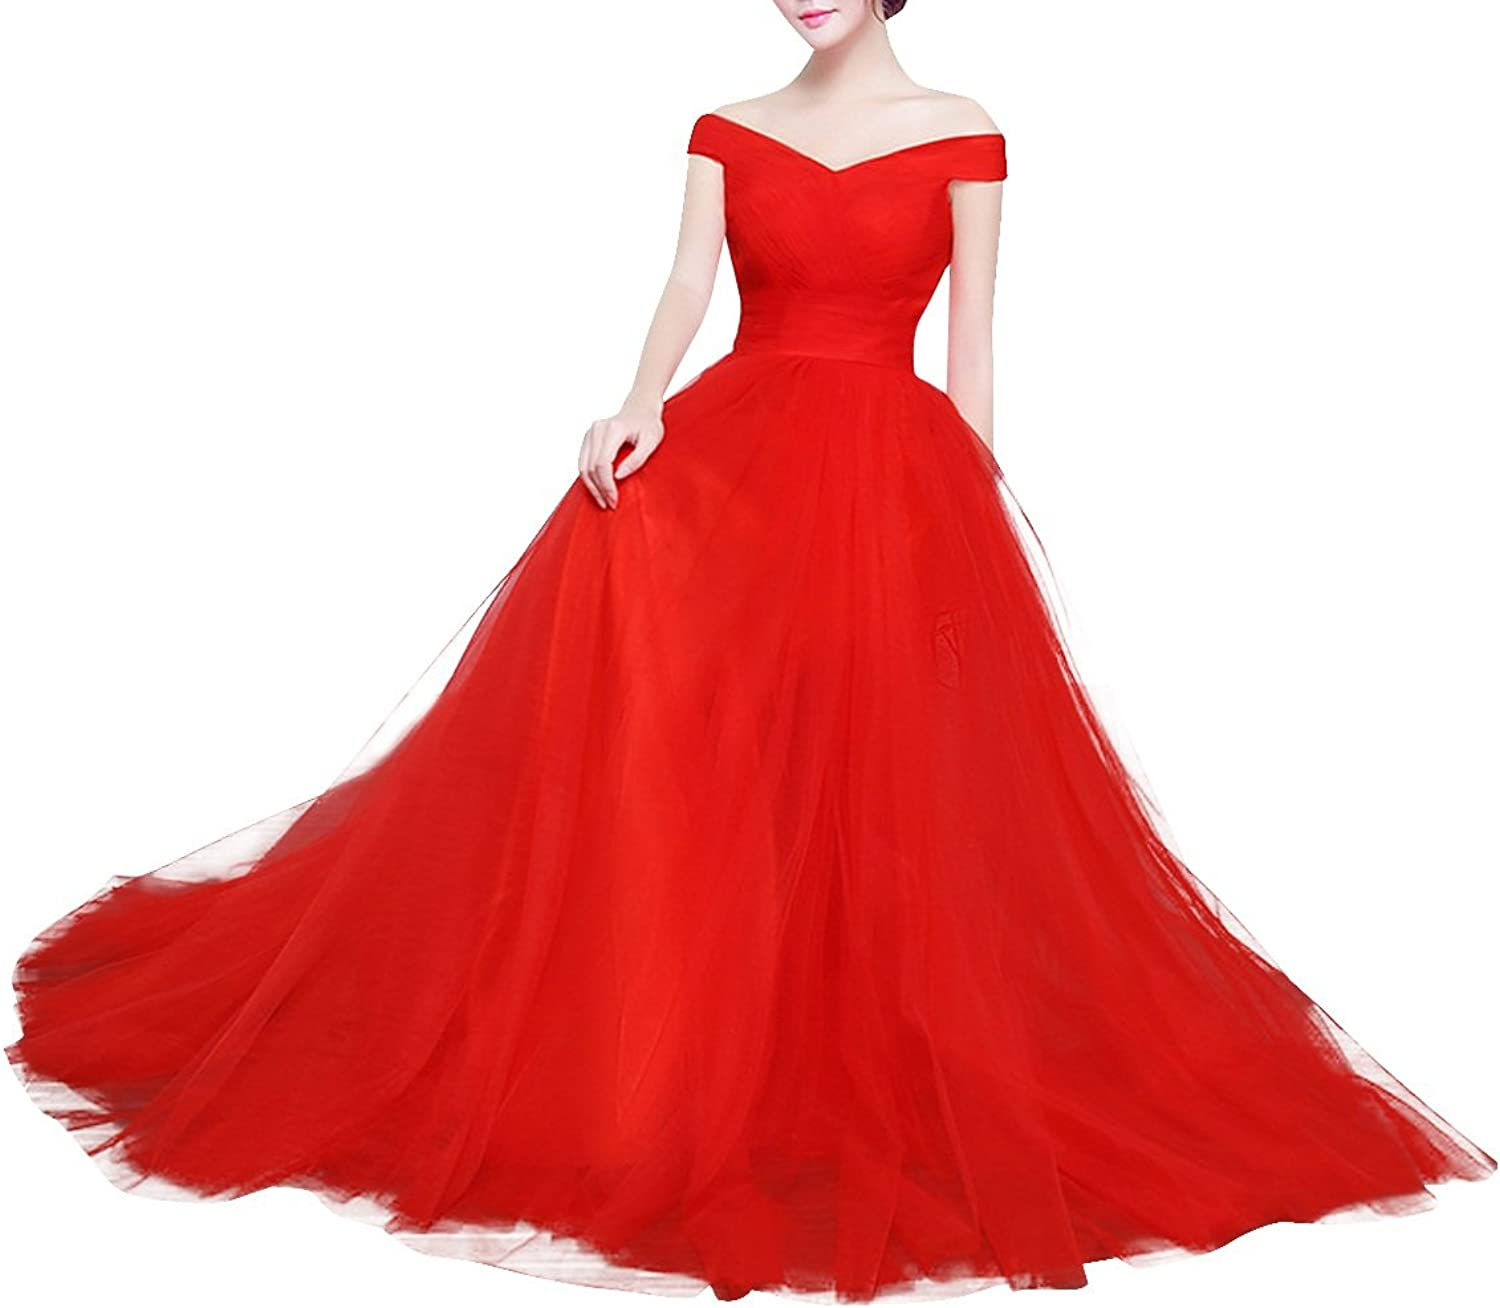 Dasior Women's Ruched Off Shoulder Tulle Long Evening Prom Dress Laceup